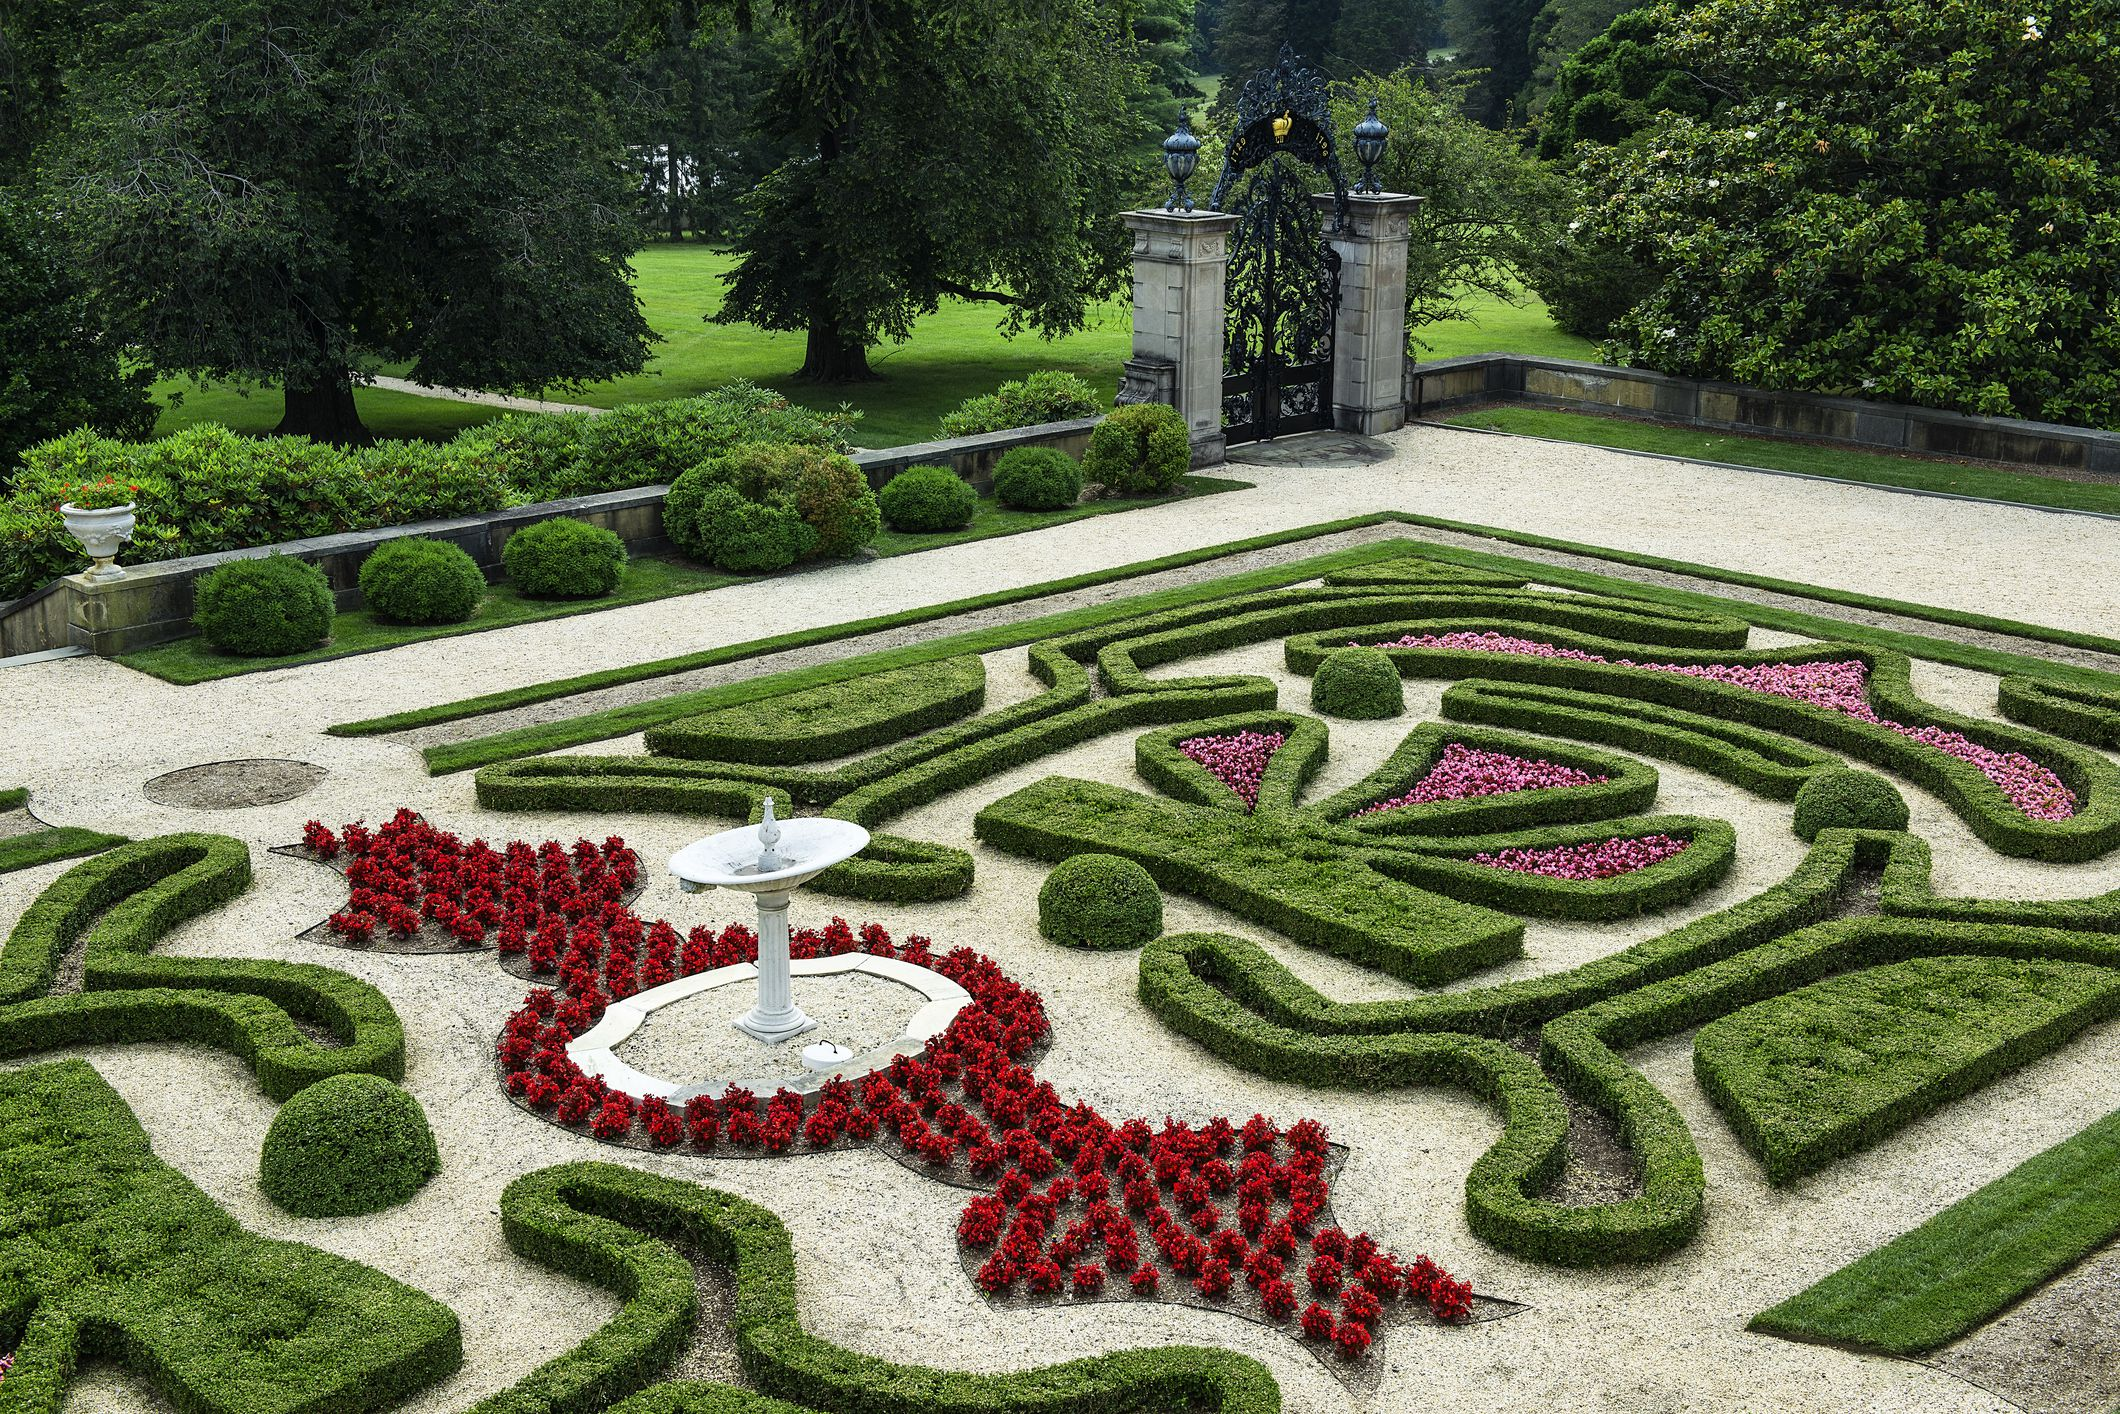 Boxwood Garden at Nemours Mansion and Gardens in Wilmington